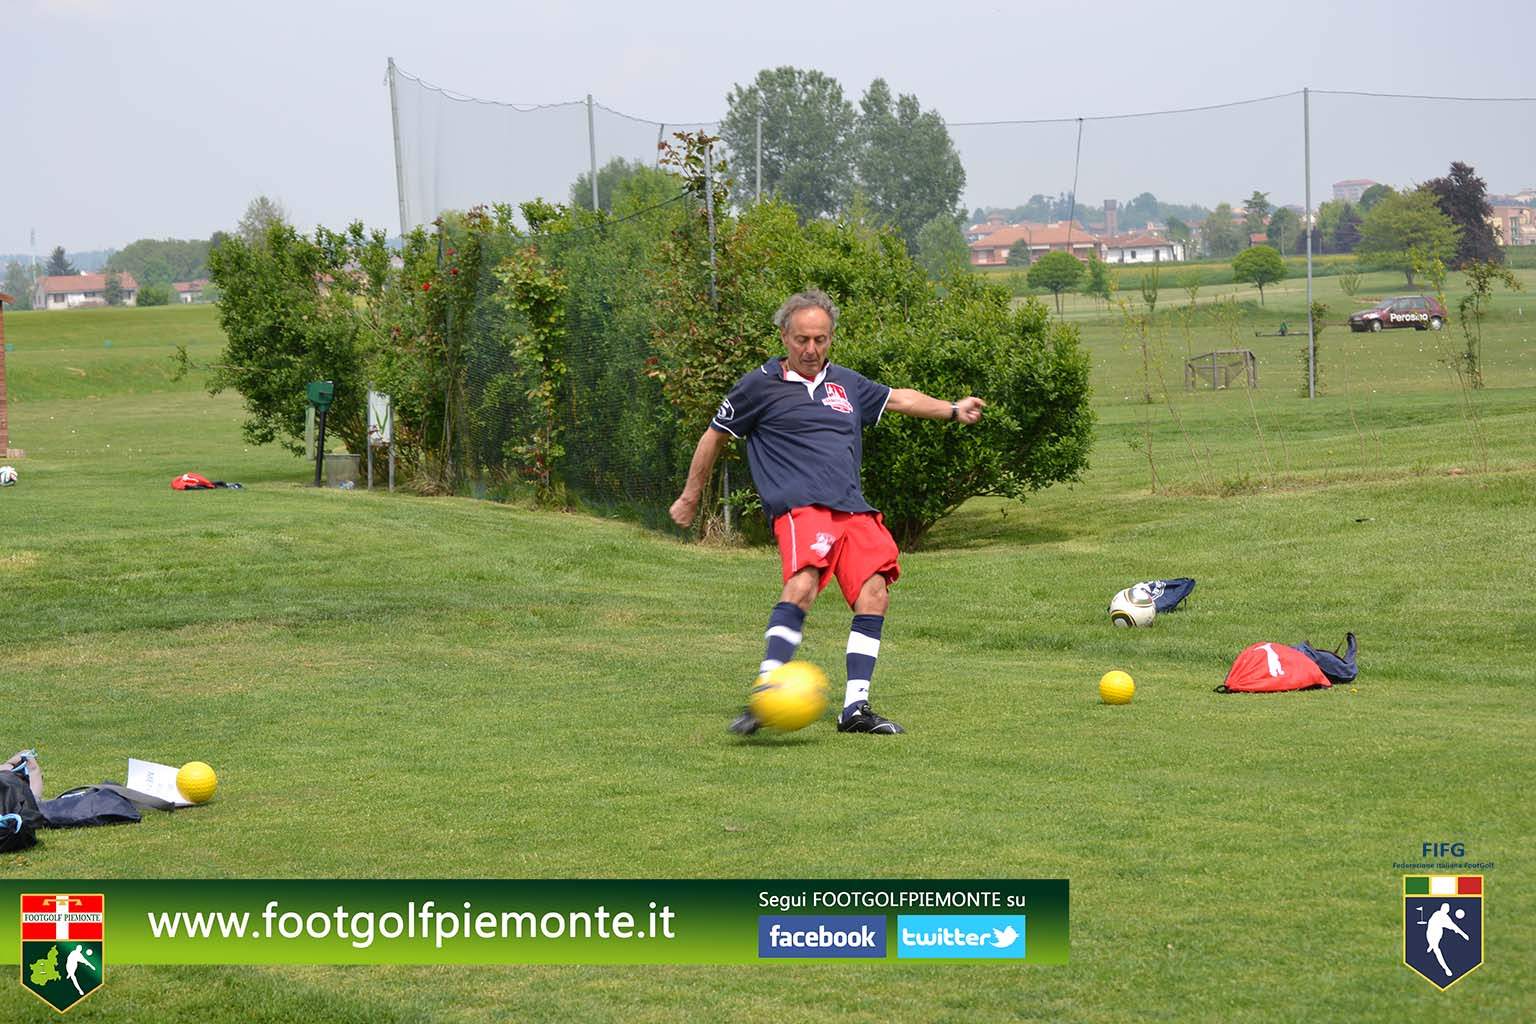 FOTO 9 Regions' Cup Footgolf Piemonte 2016 Golf Città di Asti (At) 30apr16-18